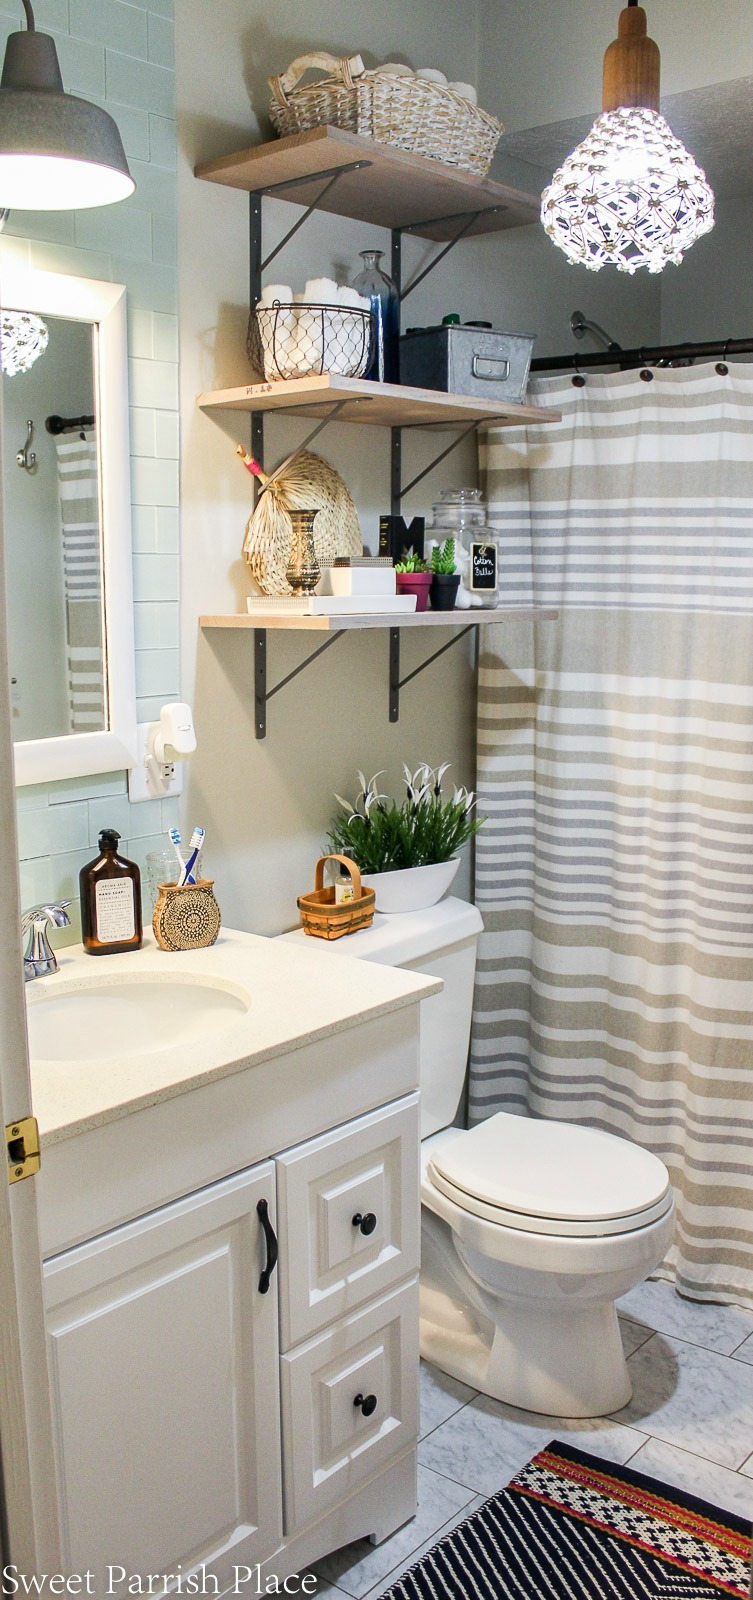 Boho eclectic bathroom reveal